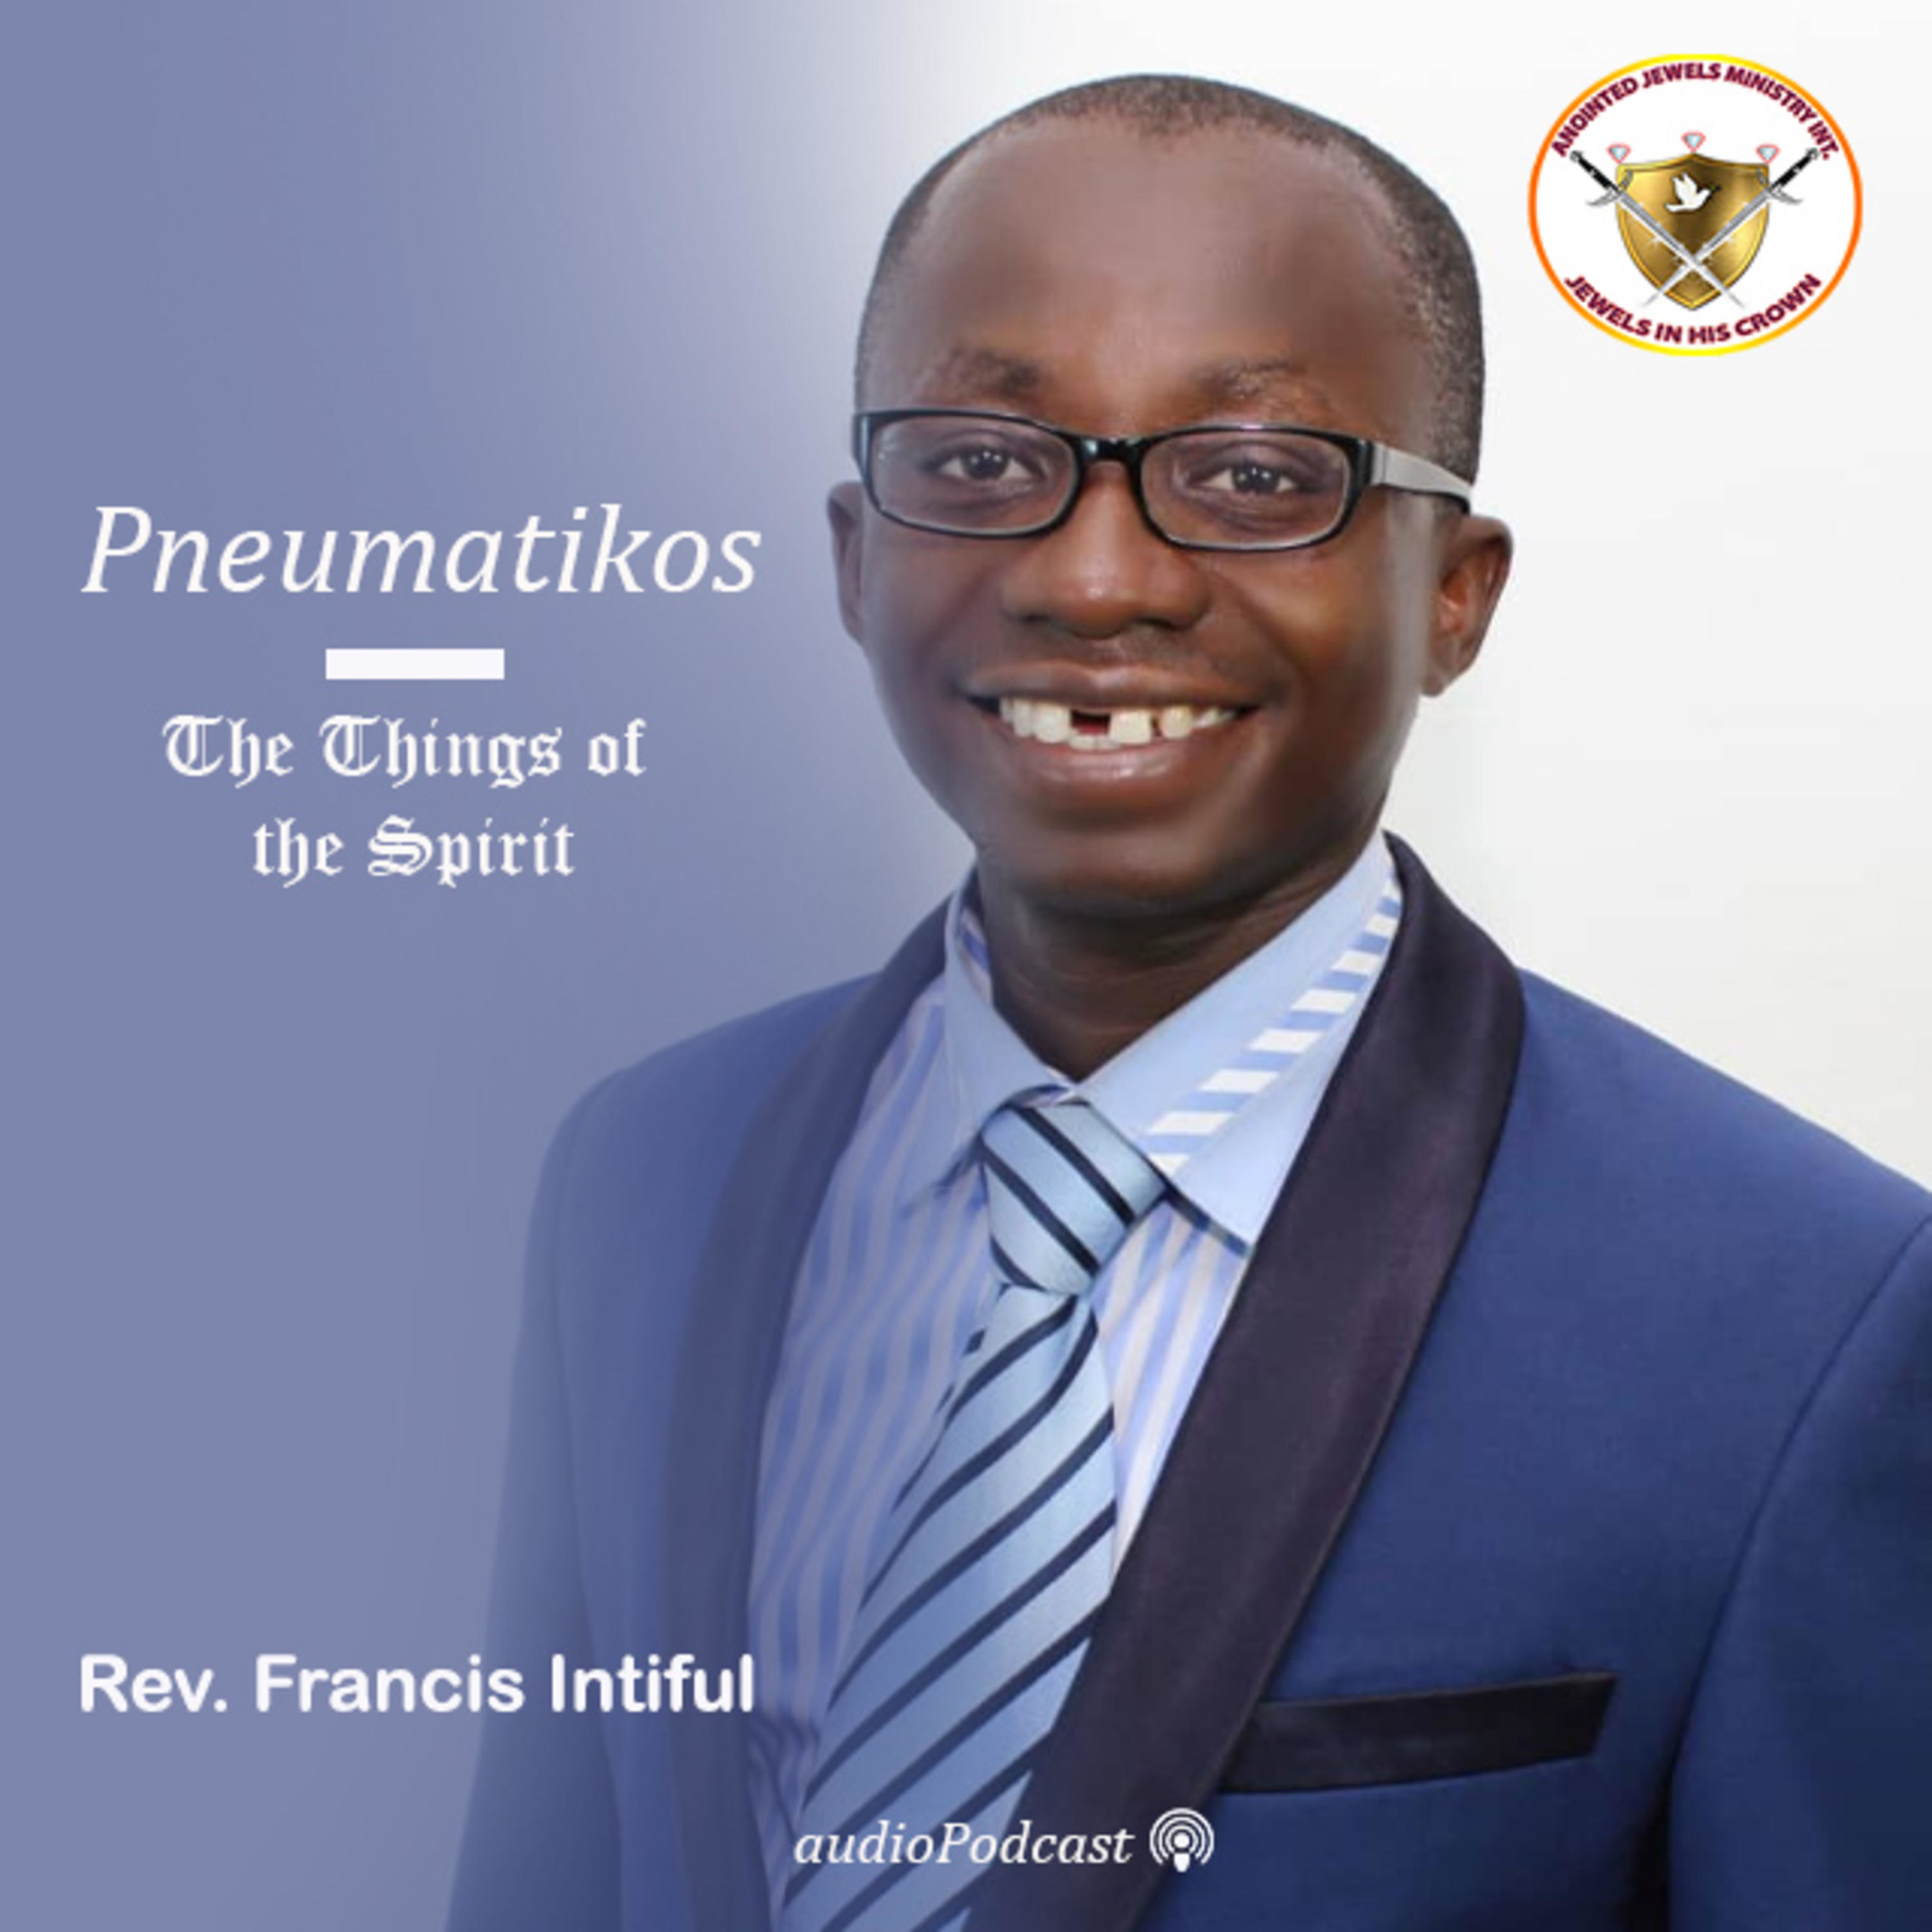 Pneumatikos - The Things of the Spirit on Jamit